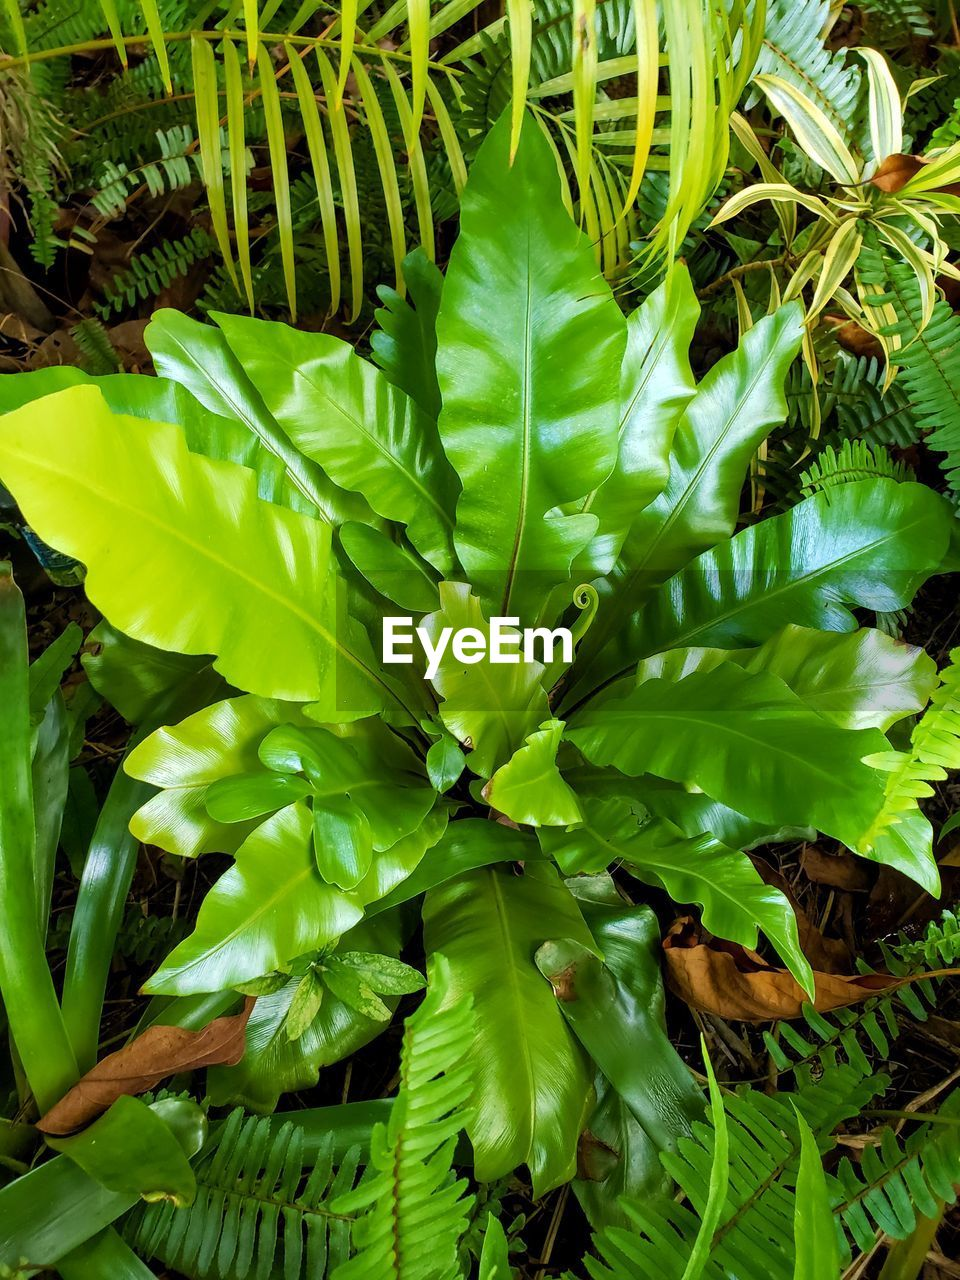 green color, growth, plant, plant part, leaf, beauty in nature, nature, day, no people, close-up, outdoors, freshness, tranquility, full frame, sunlight, high angle view, backgrounds, land, green, natural pattern